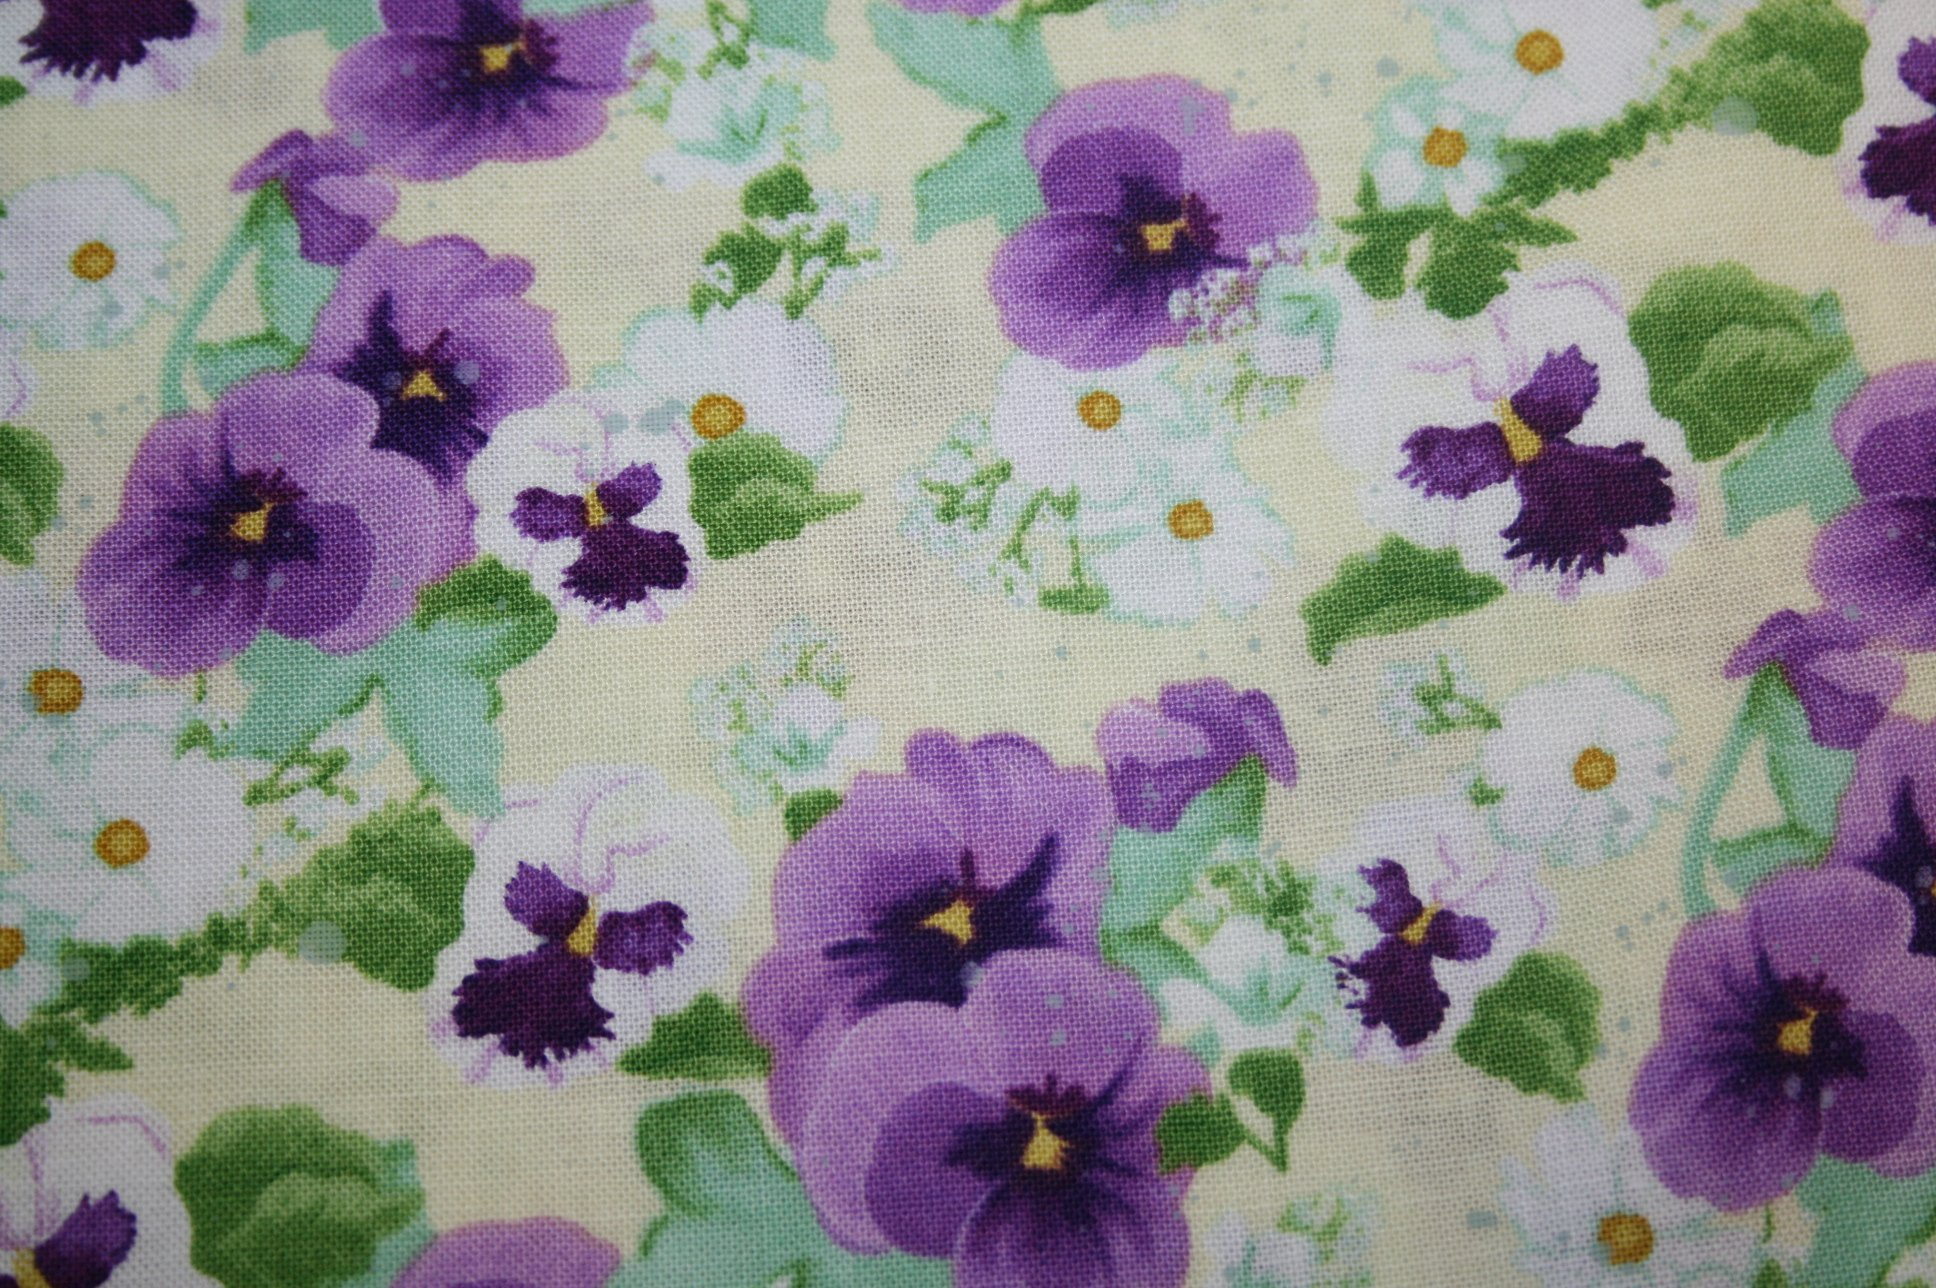 Hoppy Easter B-9429-44 (Colored Pansies on Pale Yellow with Leaves)